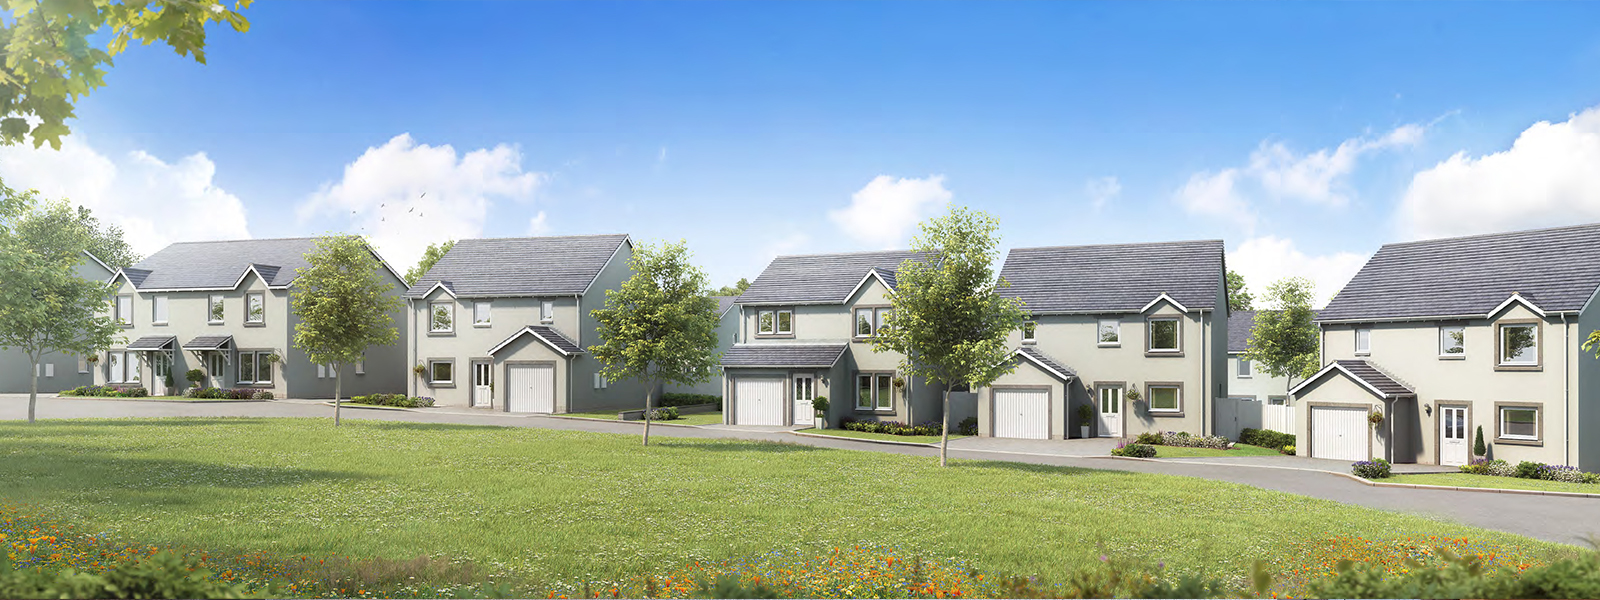 The Clachan Development